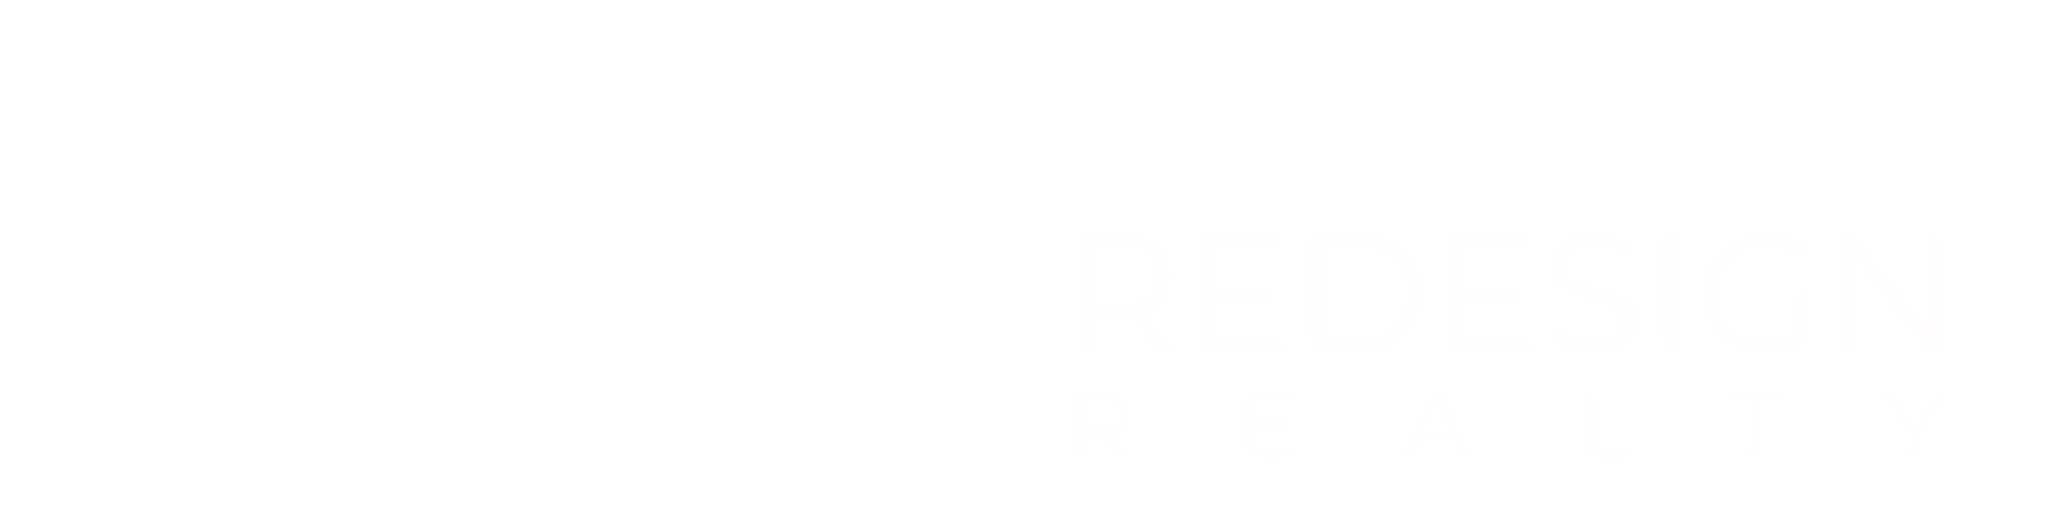 Redesign Realty